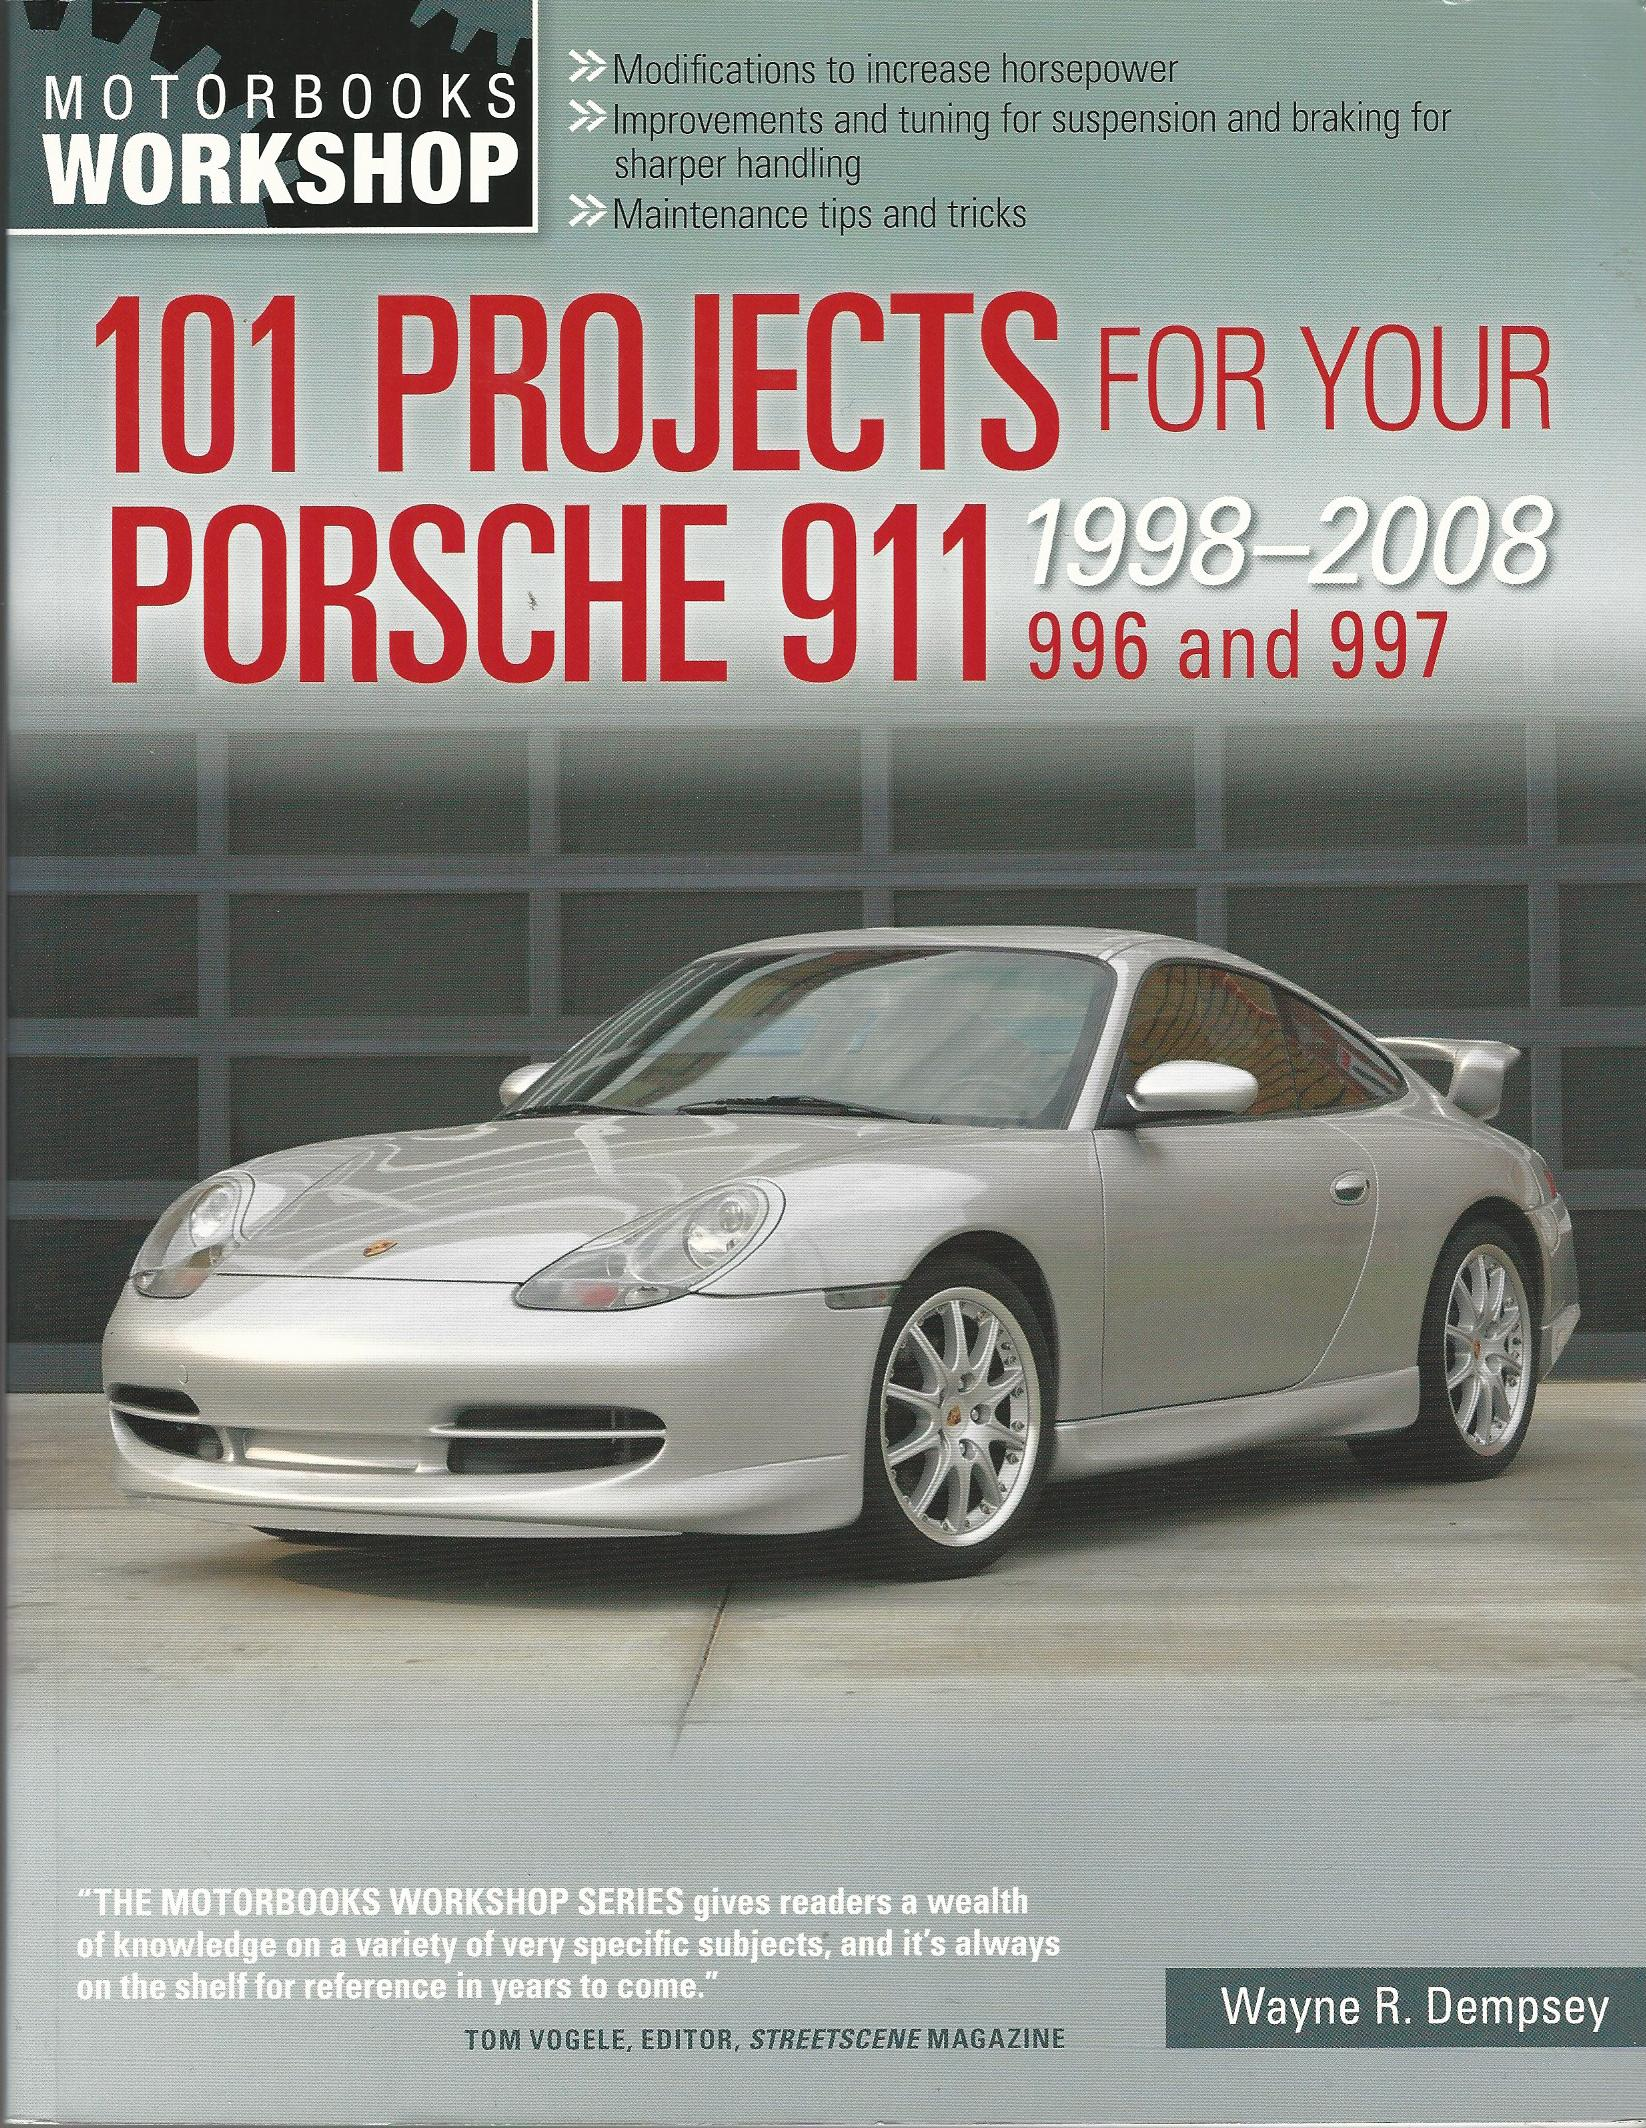 Image for 101 Projects for Your Porsche 911, 996 and 997 1998-2008